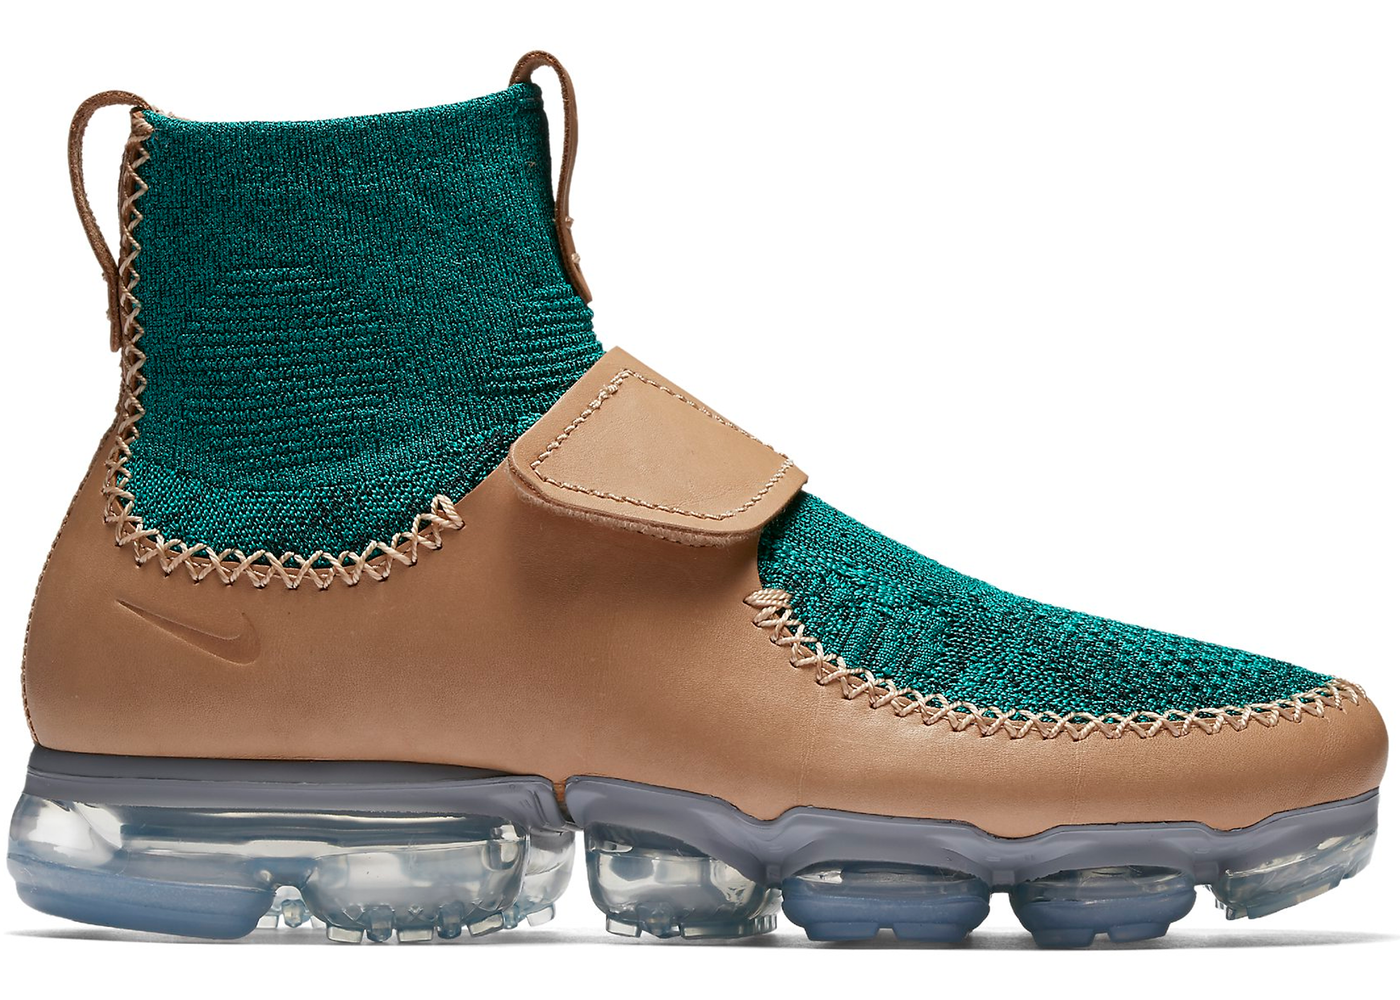 Nike Air VaporMax Release Dates & News